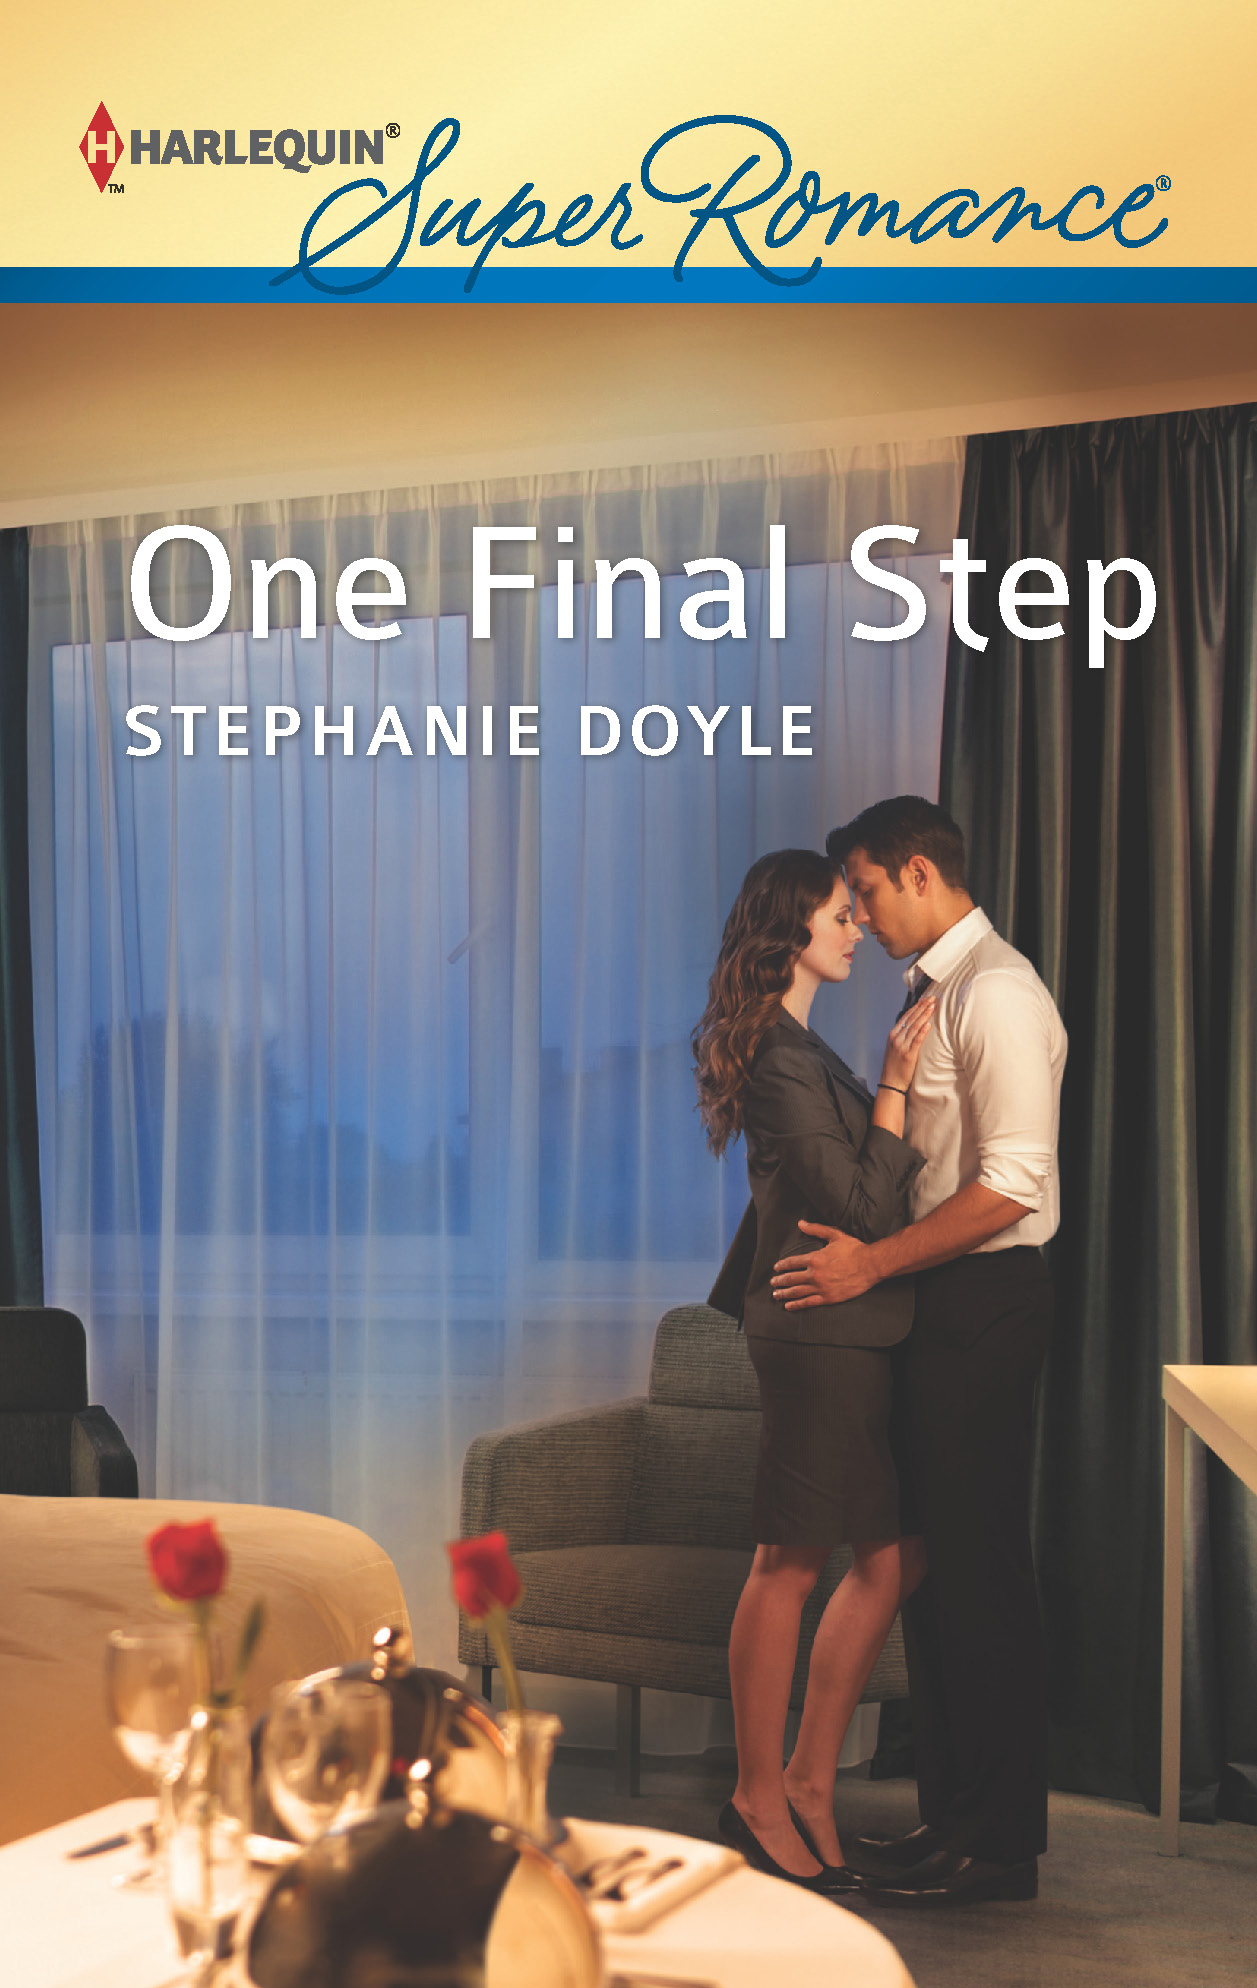 One Final Step By: Stephanie Doyle